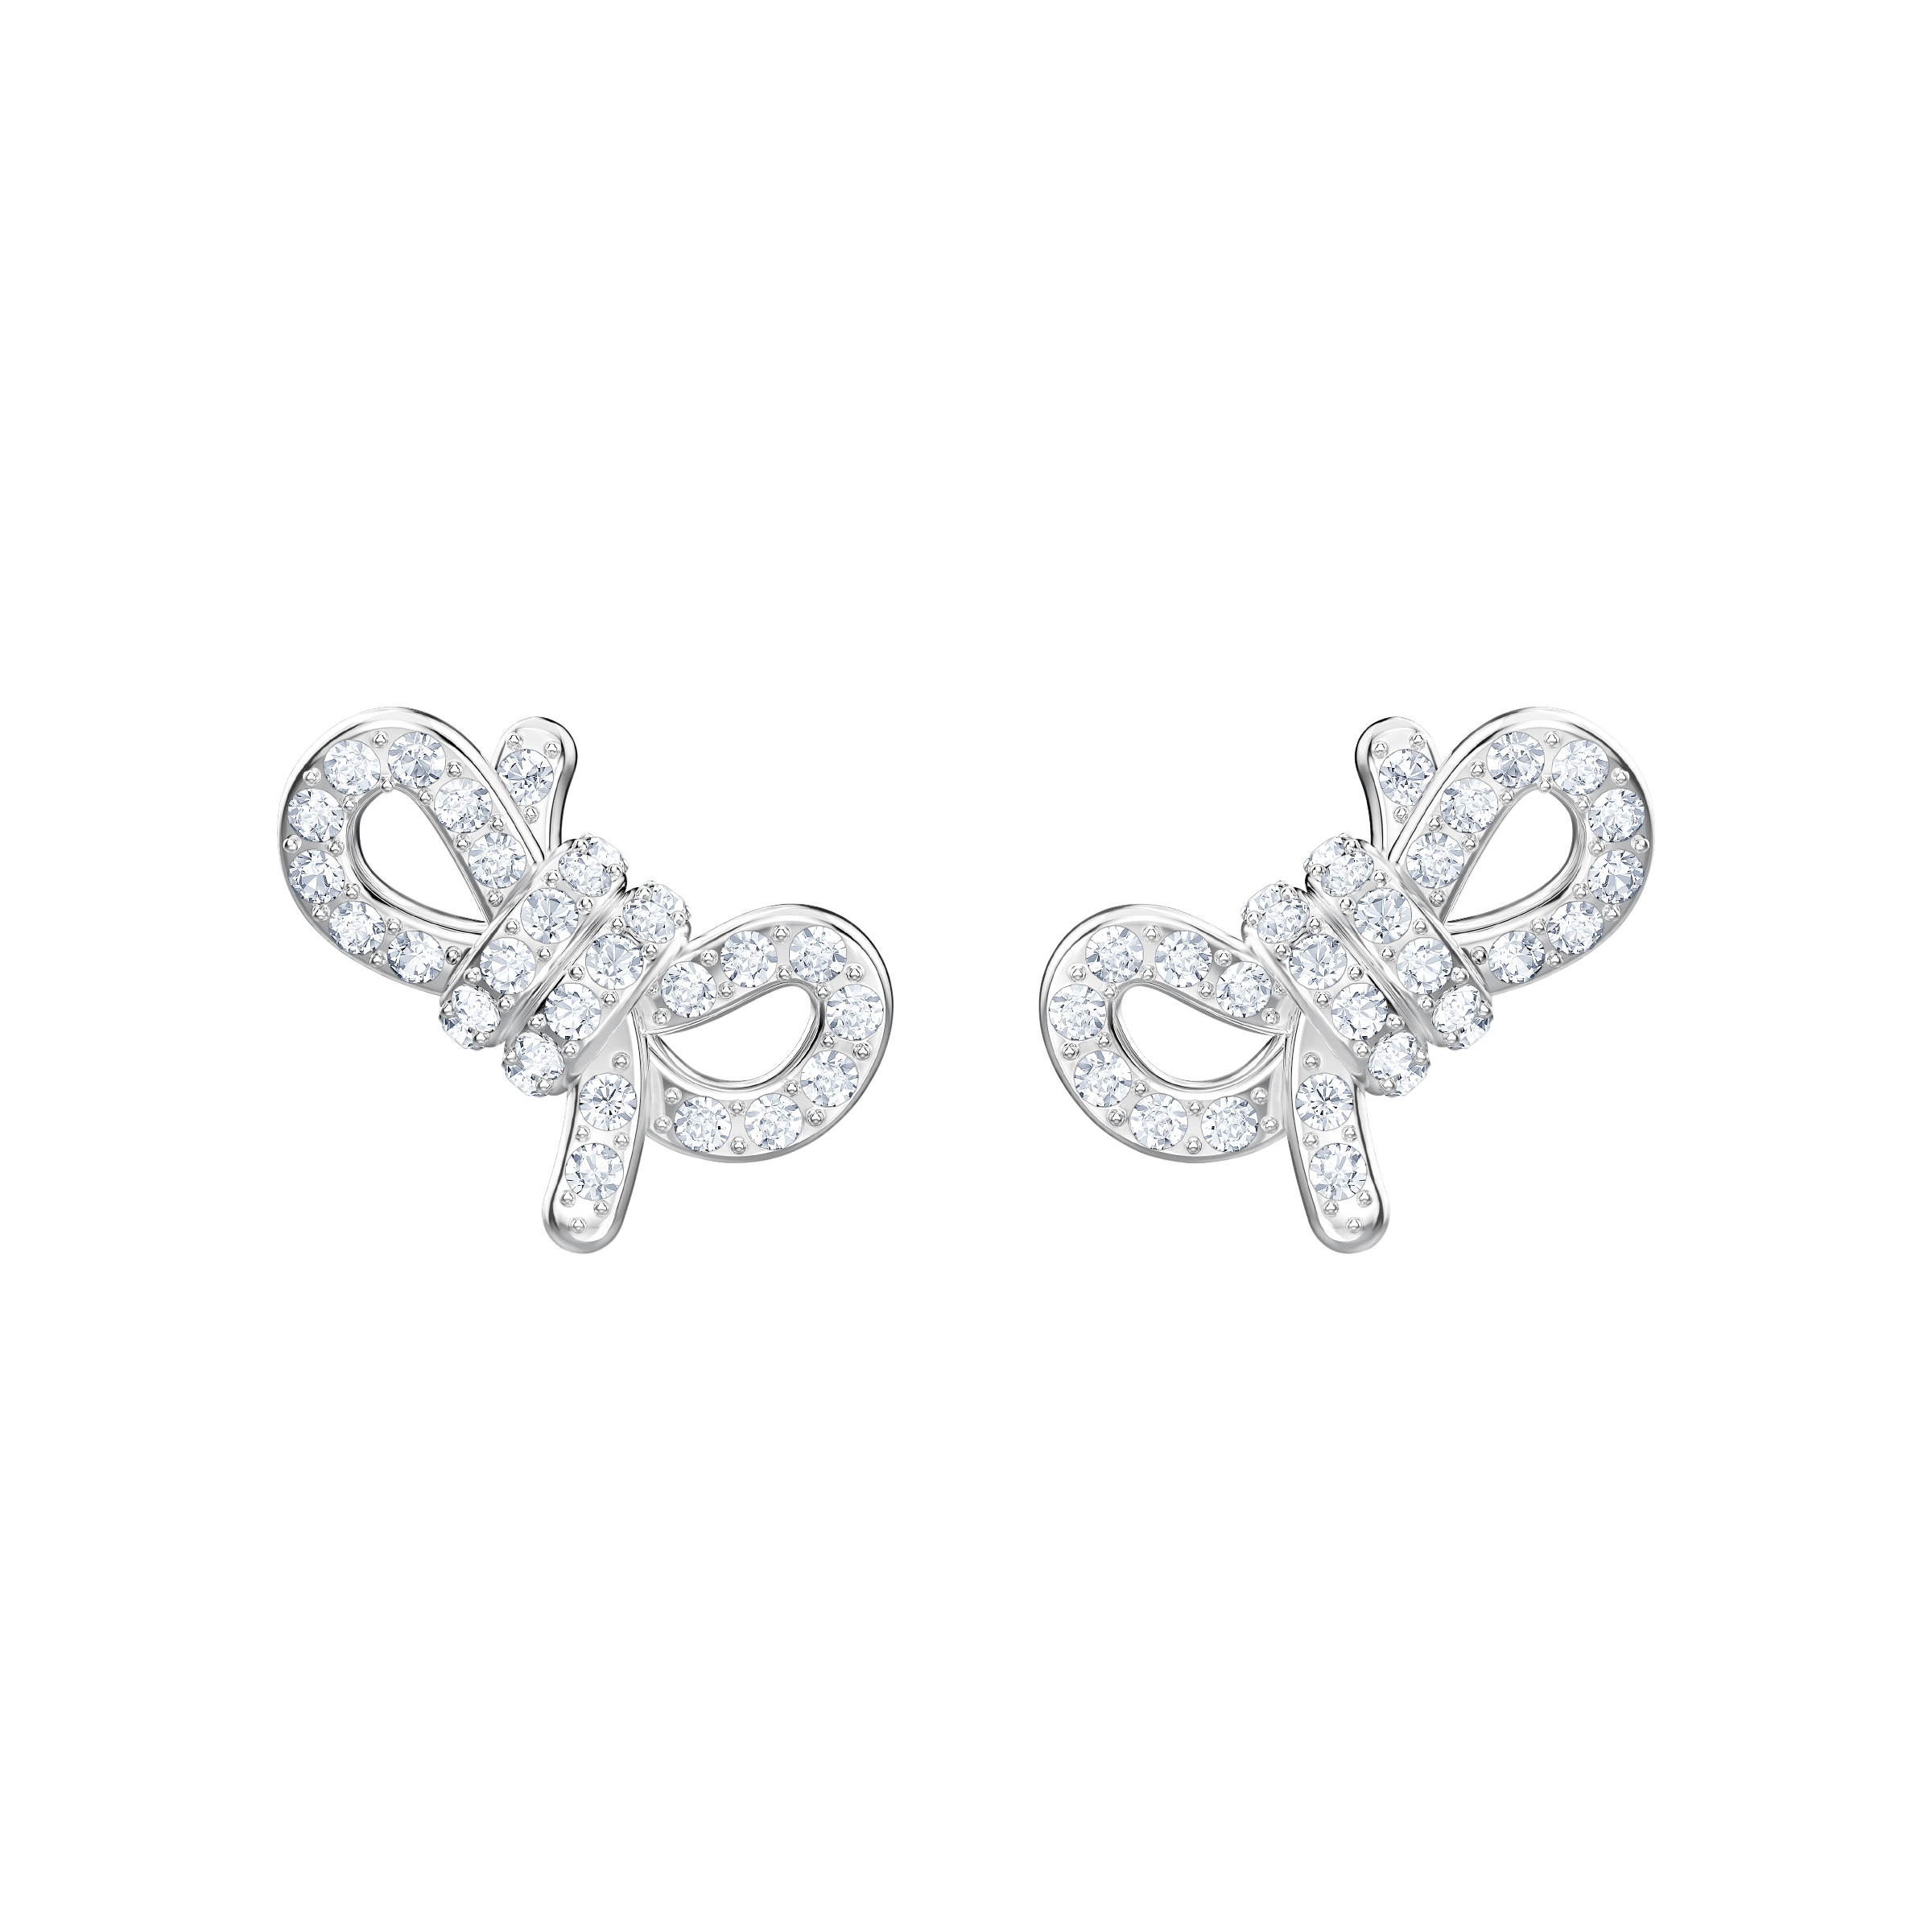 Lifelong Bow Pierced Earrings, White, Rhodium plating